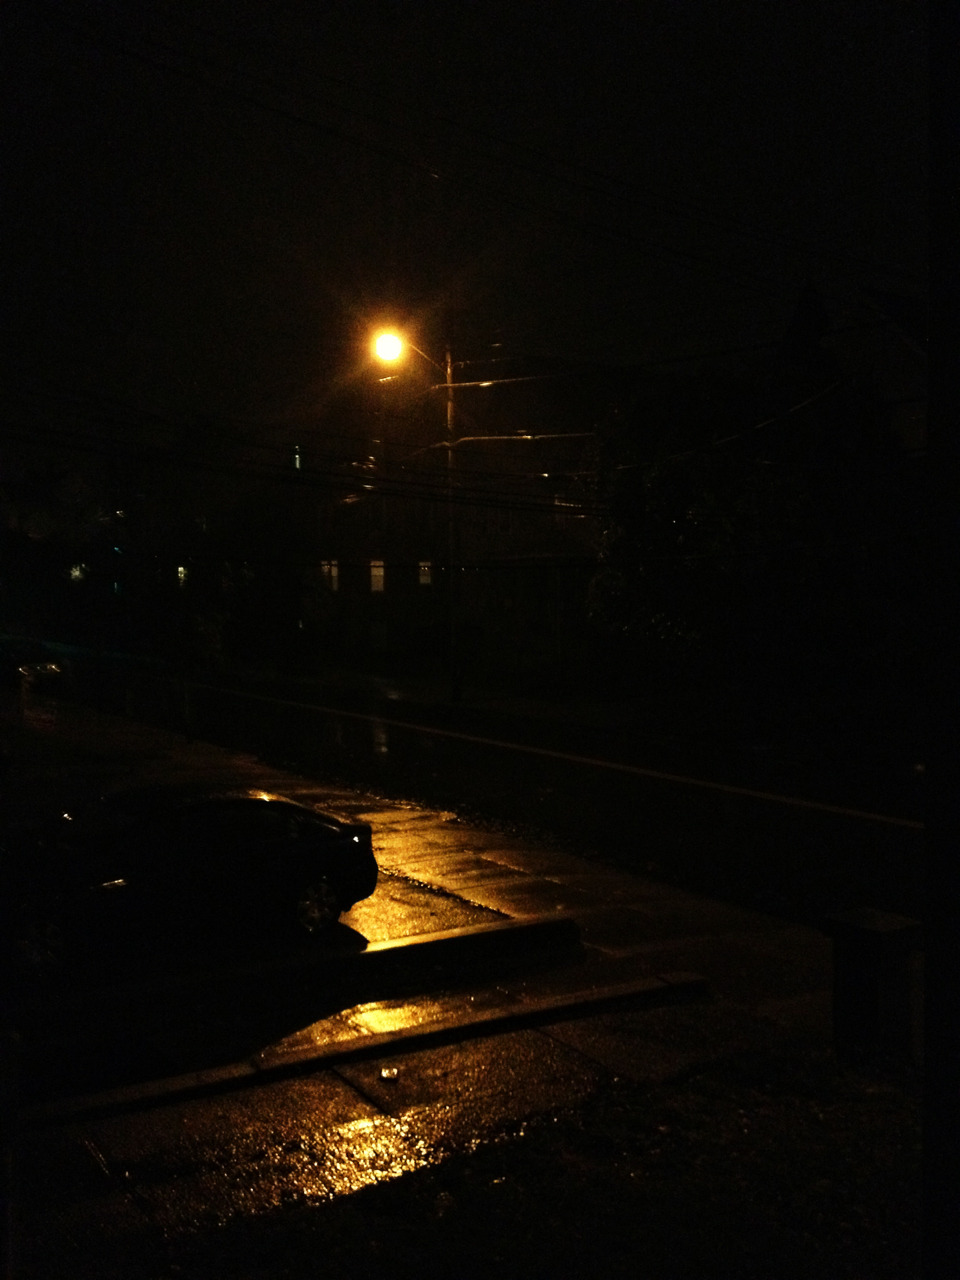 Rainy night in Boston